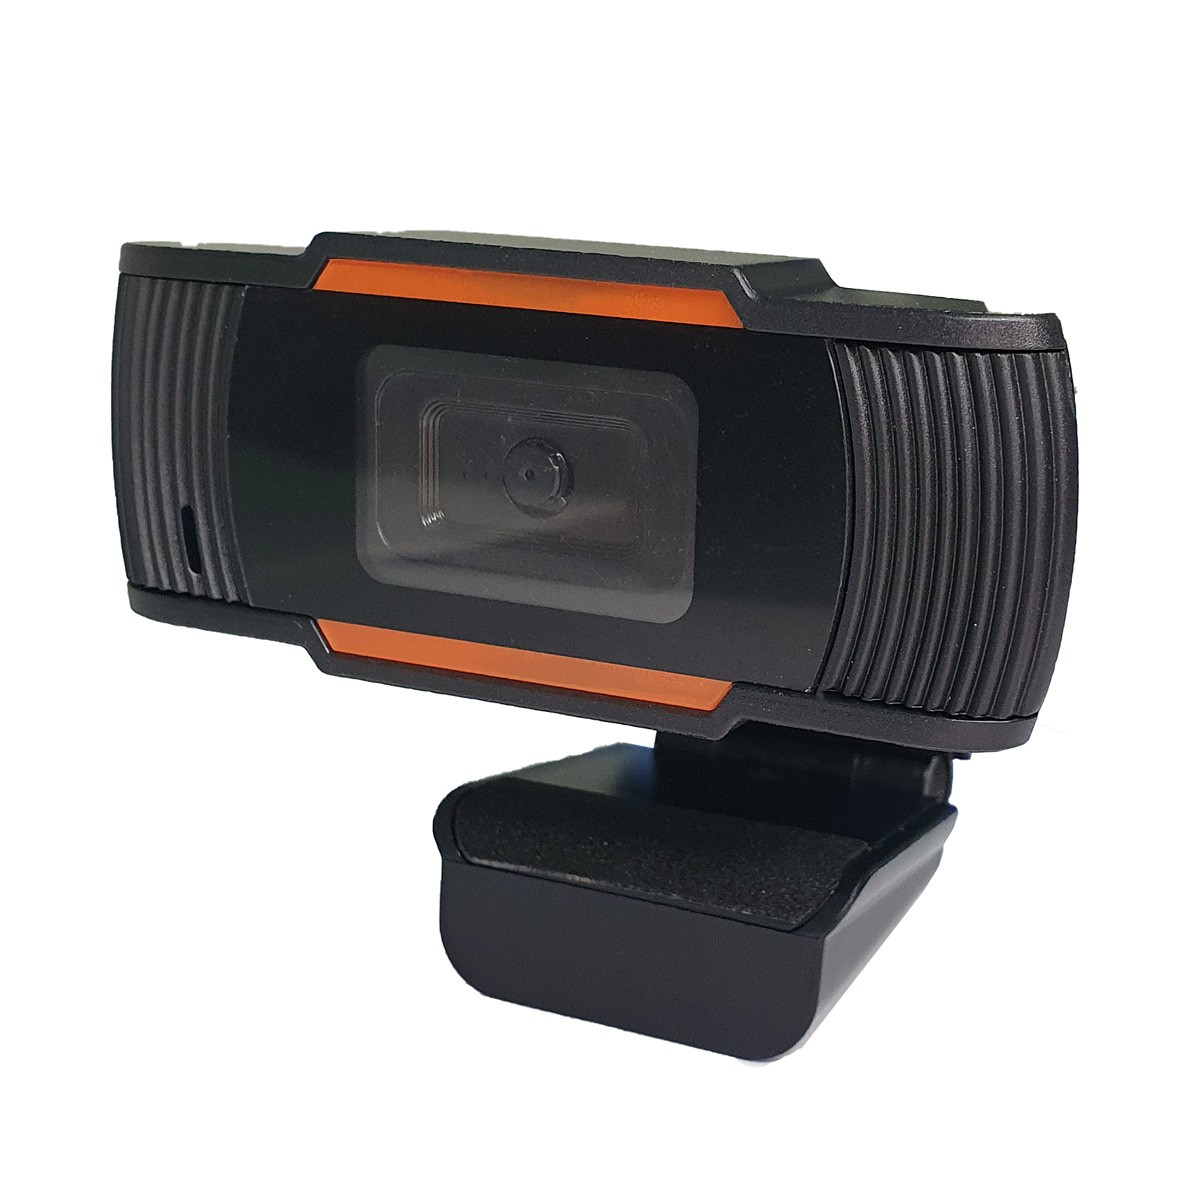 Webcam HD 720p com Microfone para Vídeo aula USB